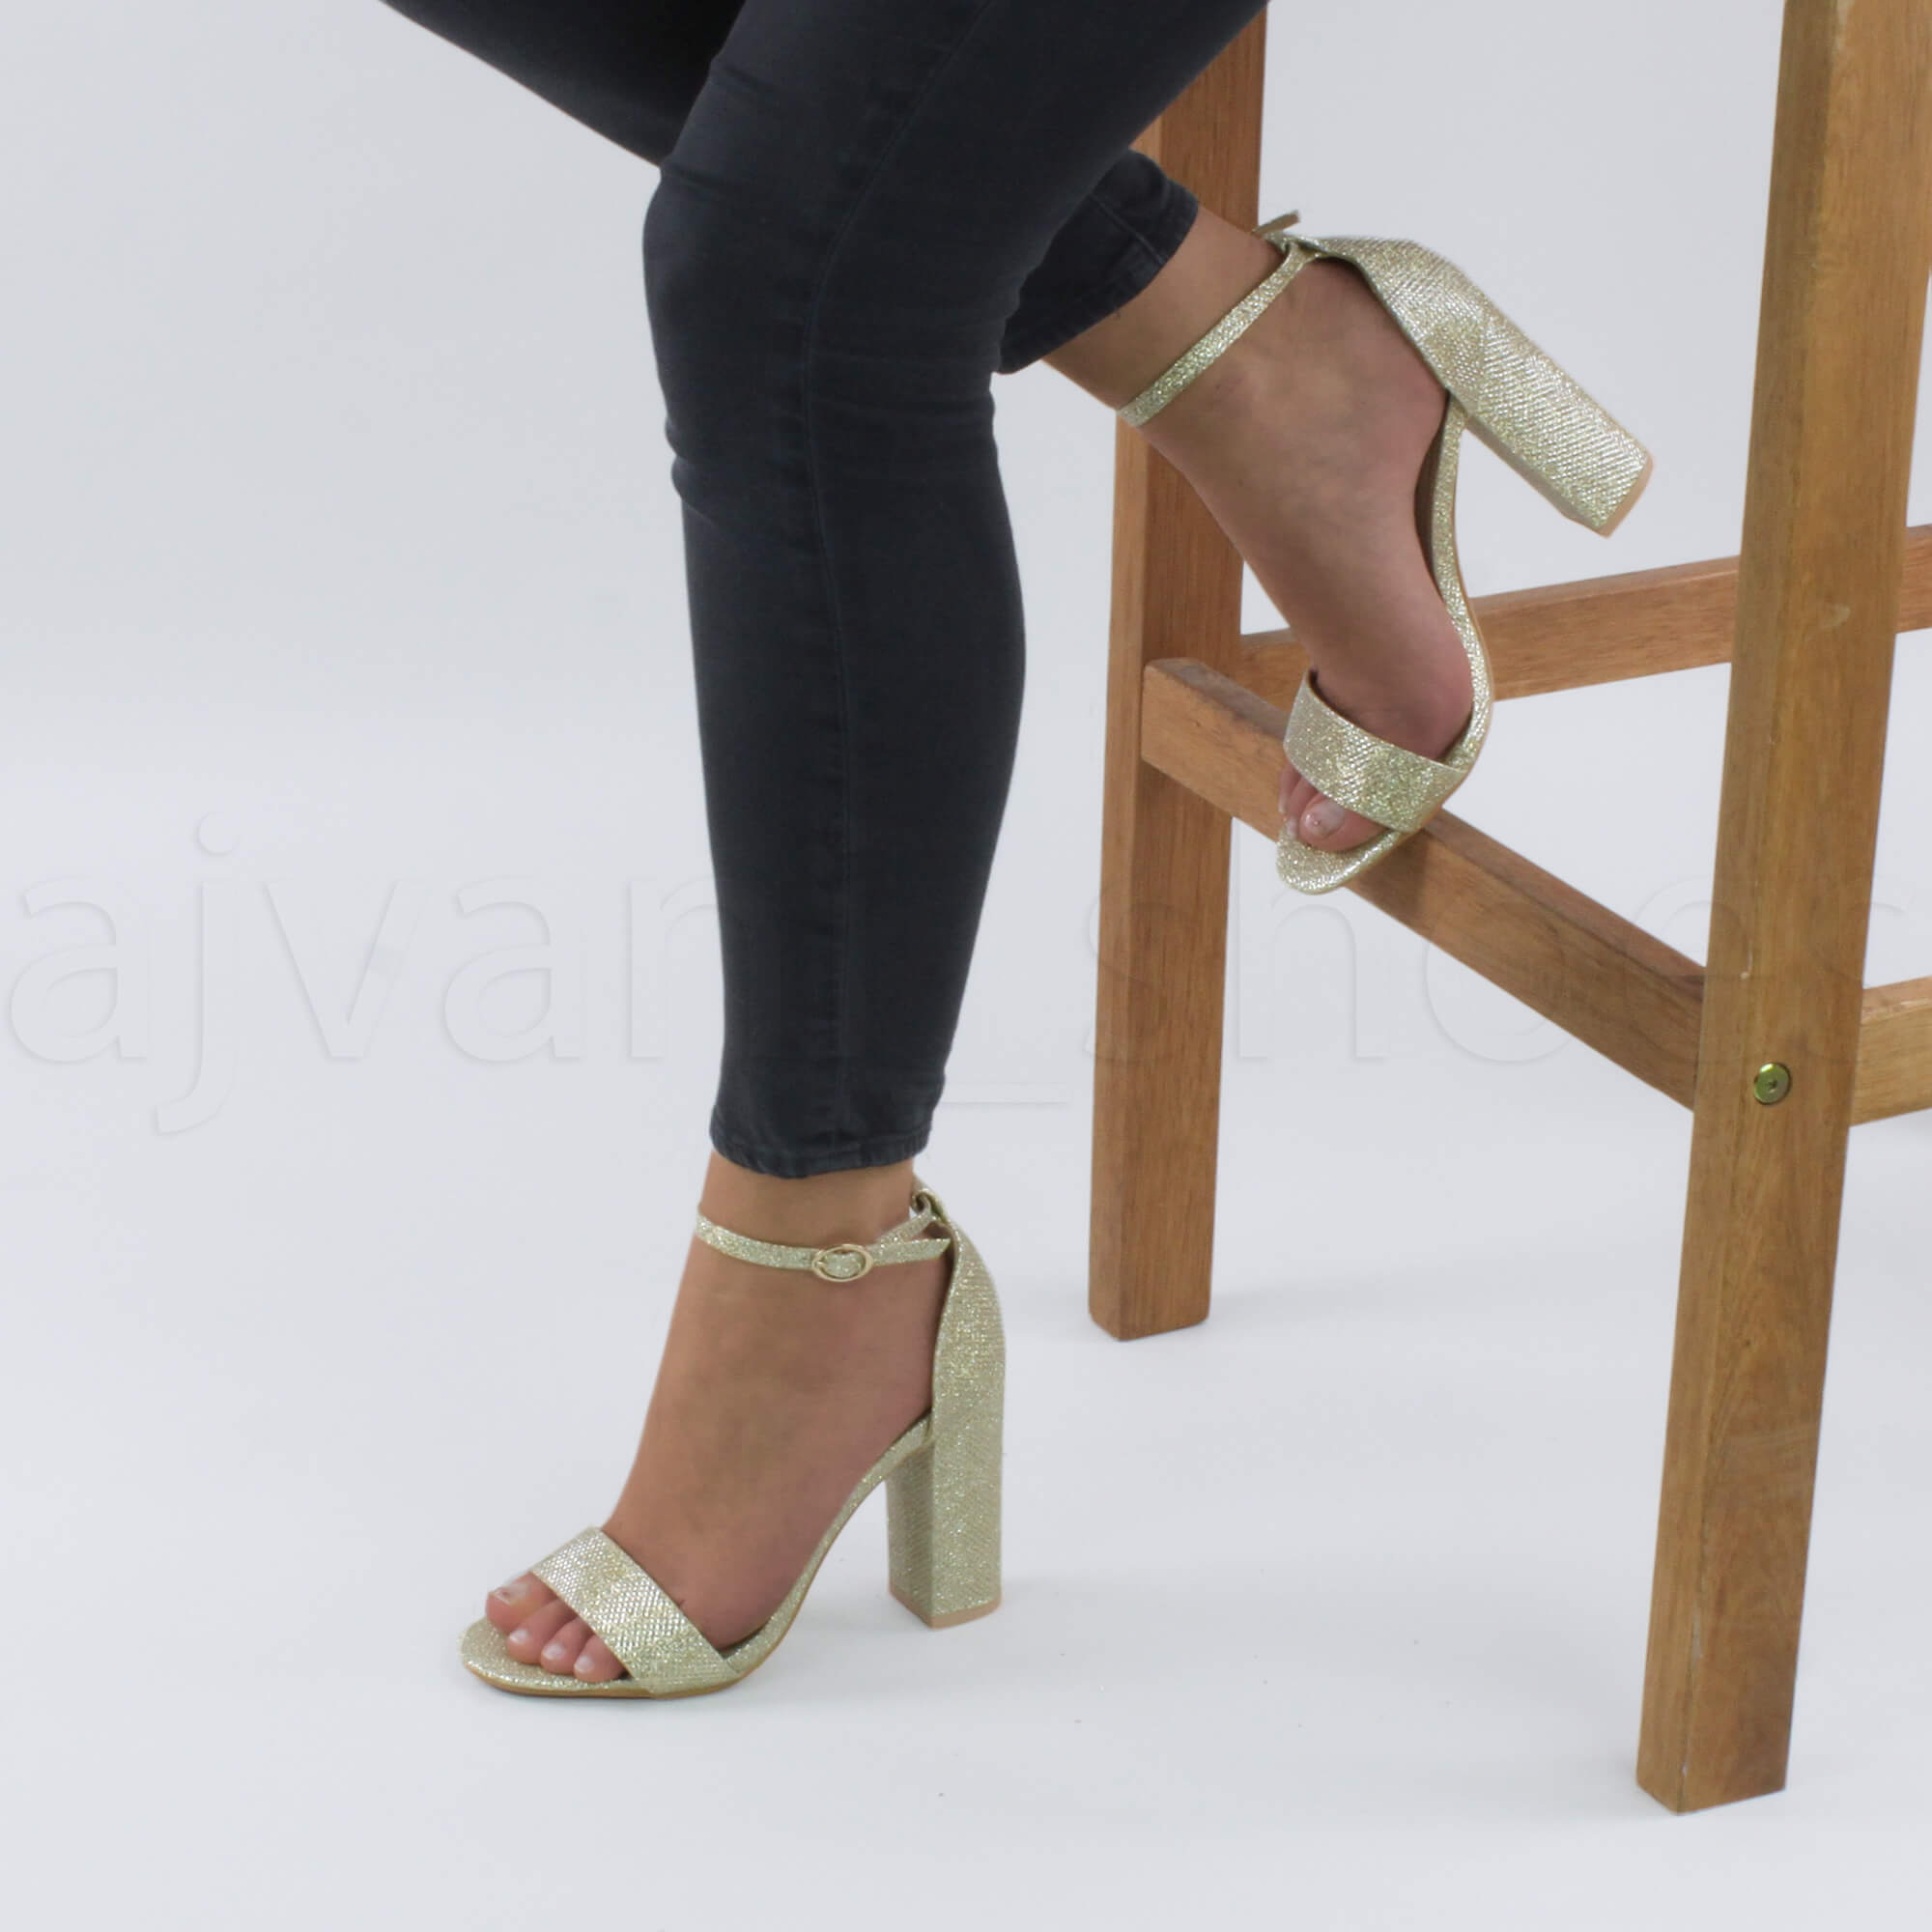 WOMENS-LADIES-BLOCK-HIGH-HEEL-ANKLE-STRAP-PEEP-TOE-STRAPPY-SANDALS-SHOES-SIZE thumbnail 78